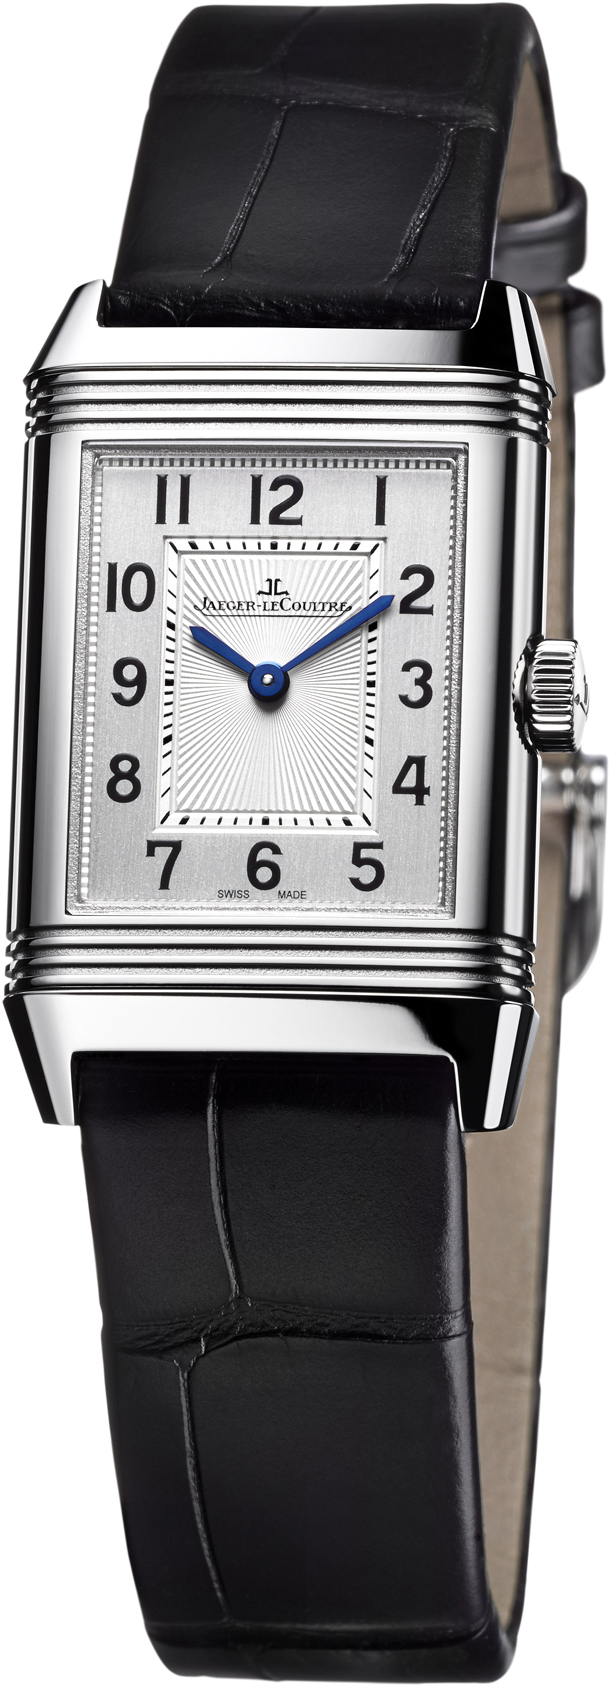 Jaeger-LeCoultre-Reverso-Classic-Small